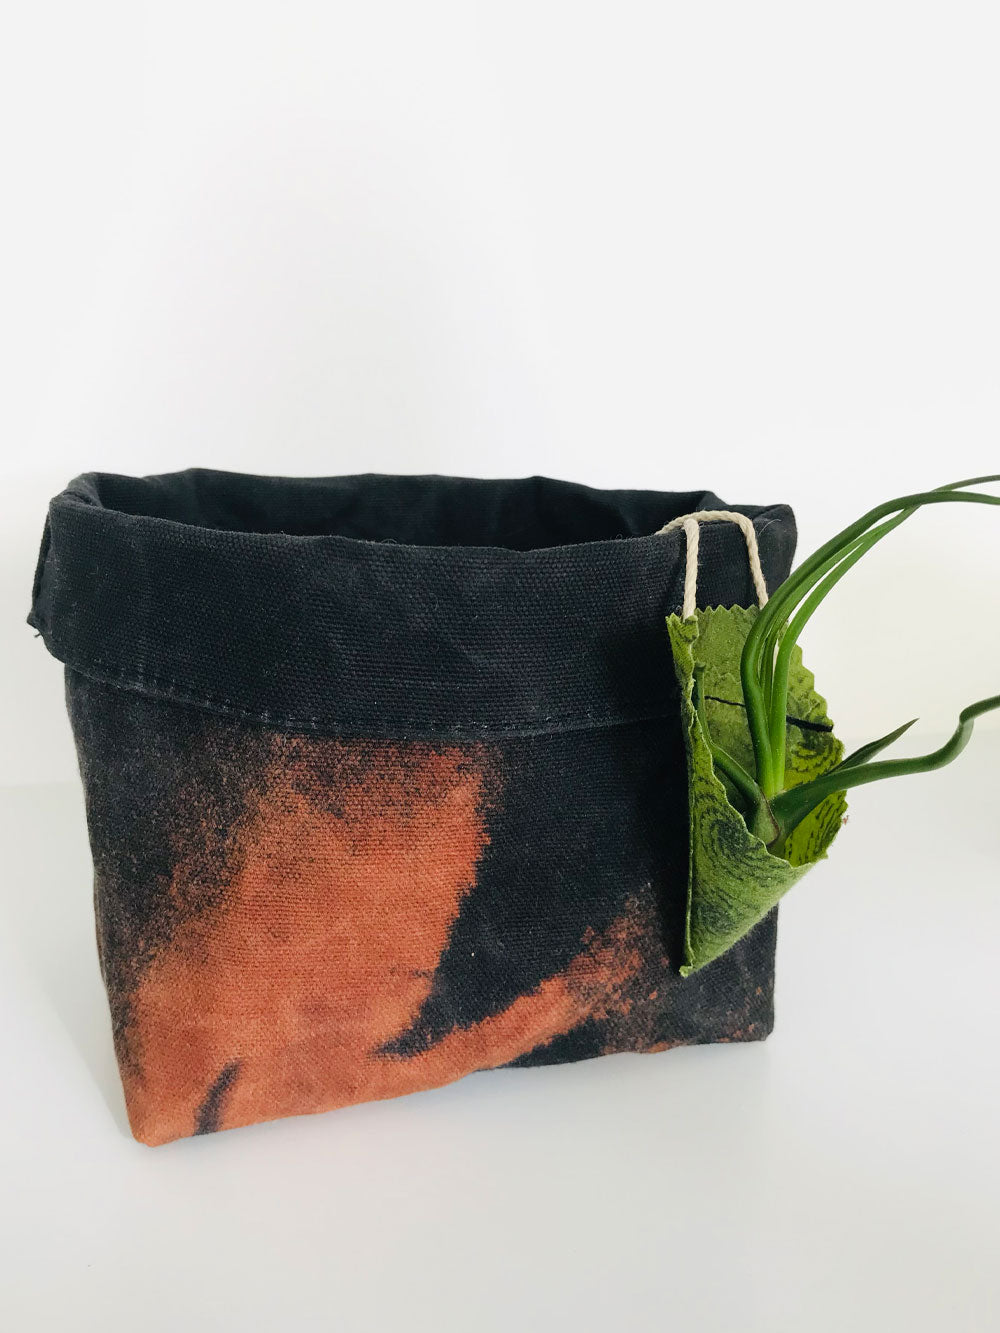 A black fabric basket is discharged dyed, which creates an abstract pattern in a rust color. An aloe vera plant sits inside the fabric basket. A small air plant hangs in a cone shaped air plant holder off the side of the basket.